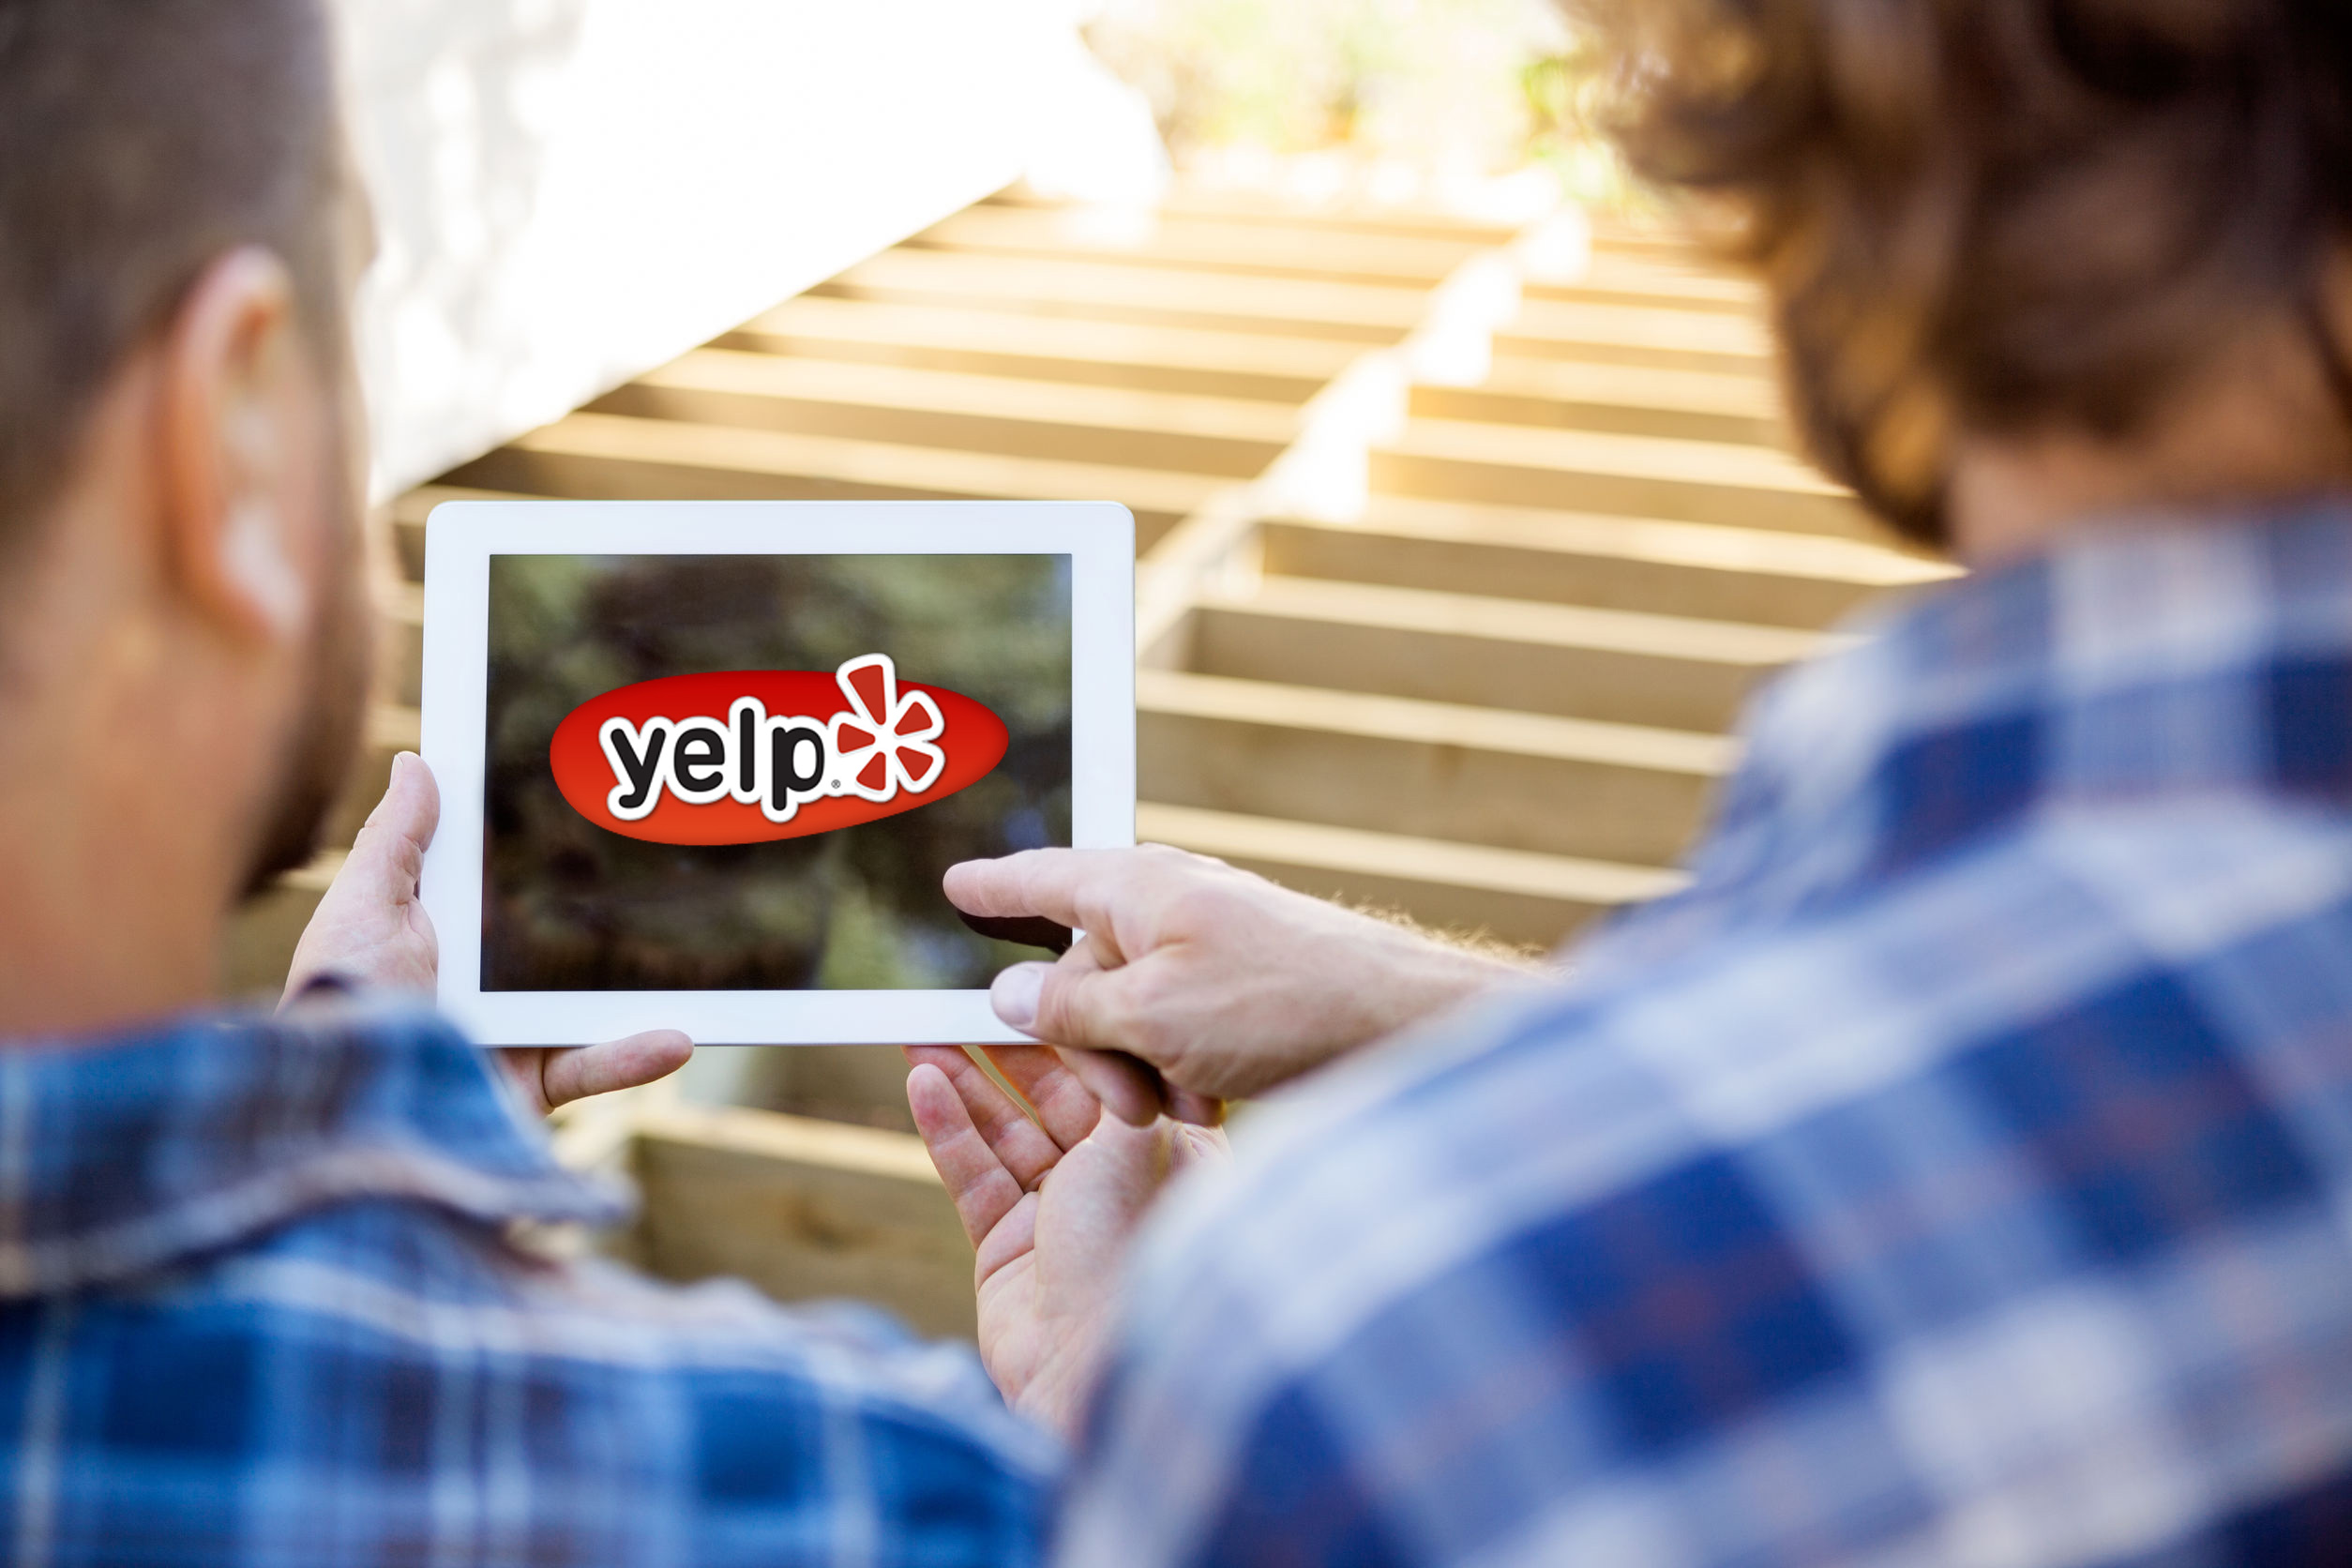 yelp on an ipad